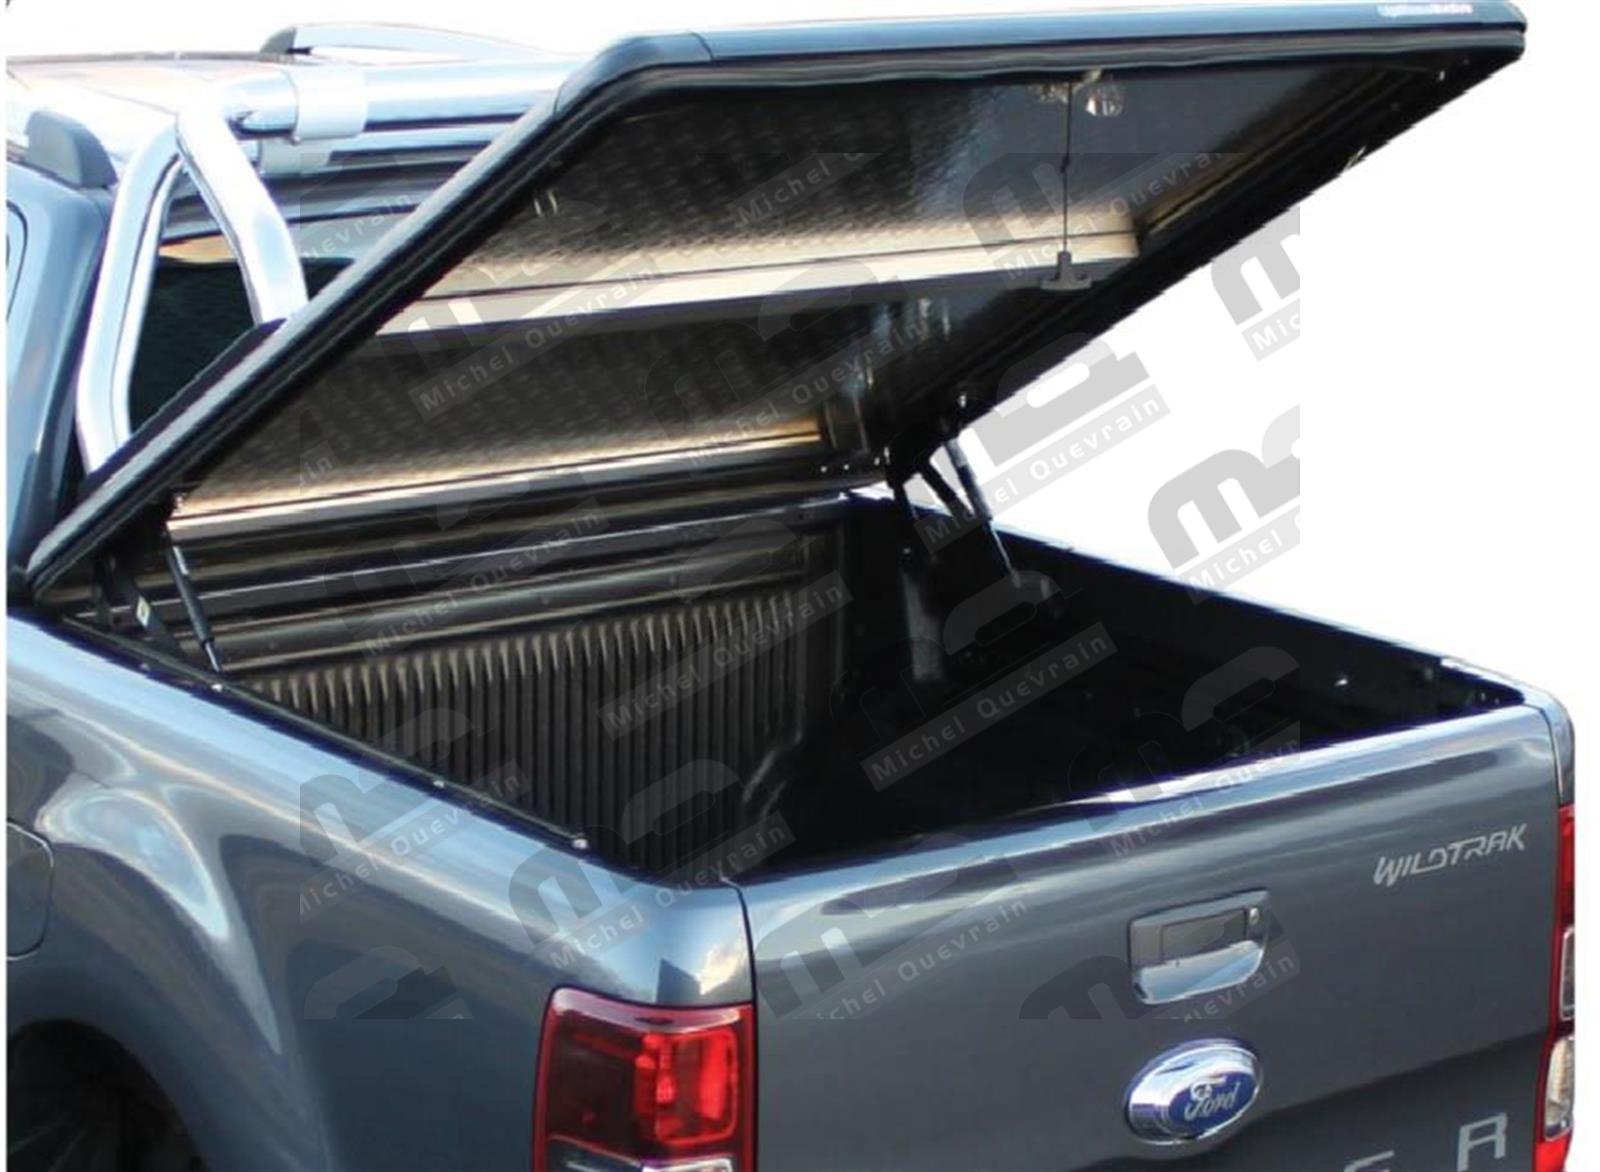 Black Roll Bar 216 76mm Amarok Upstone